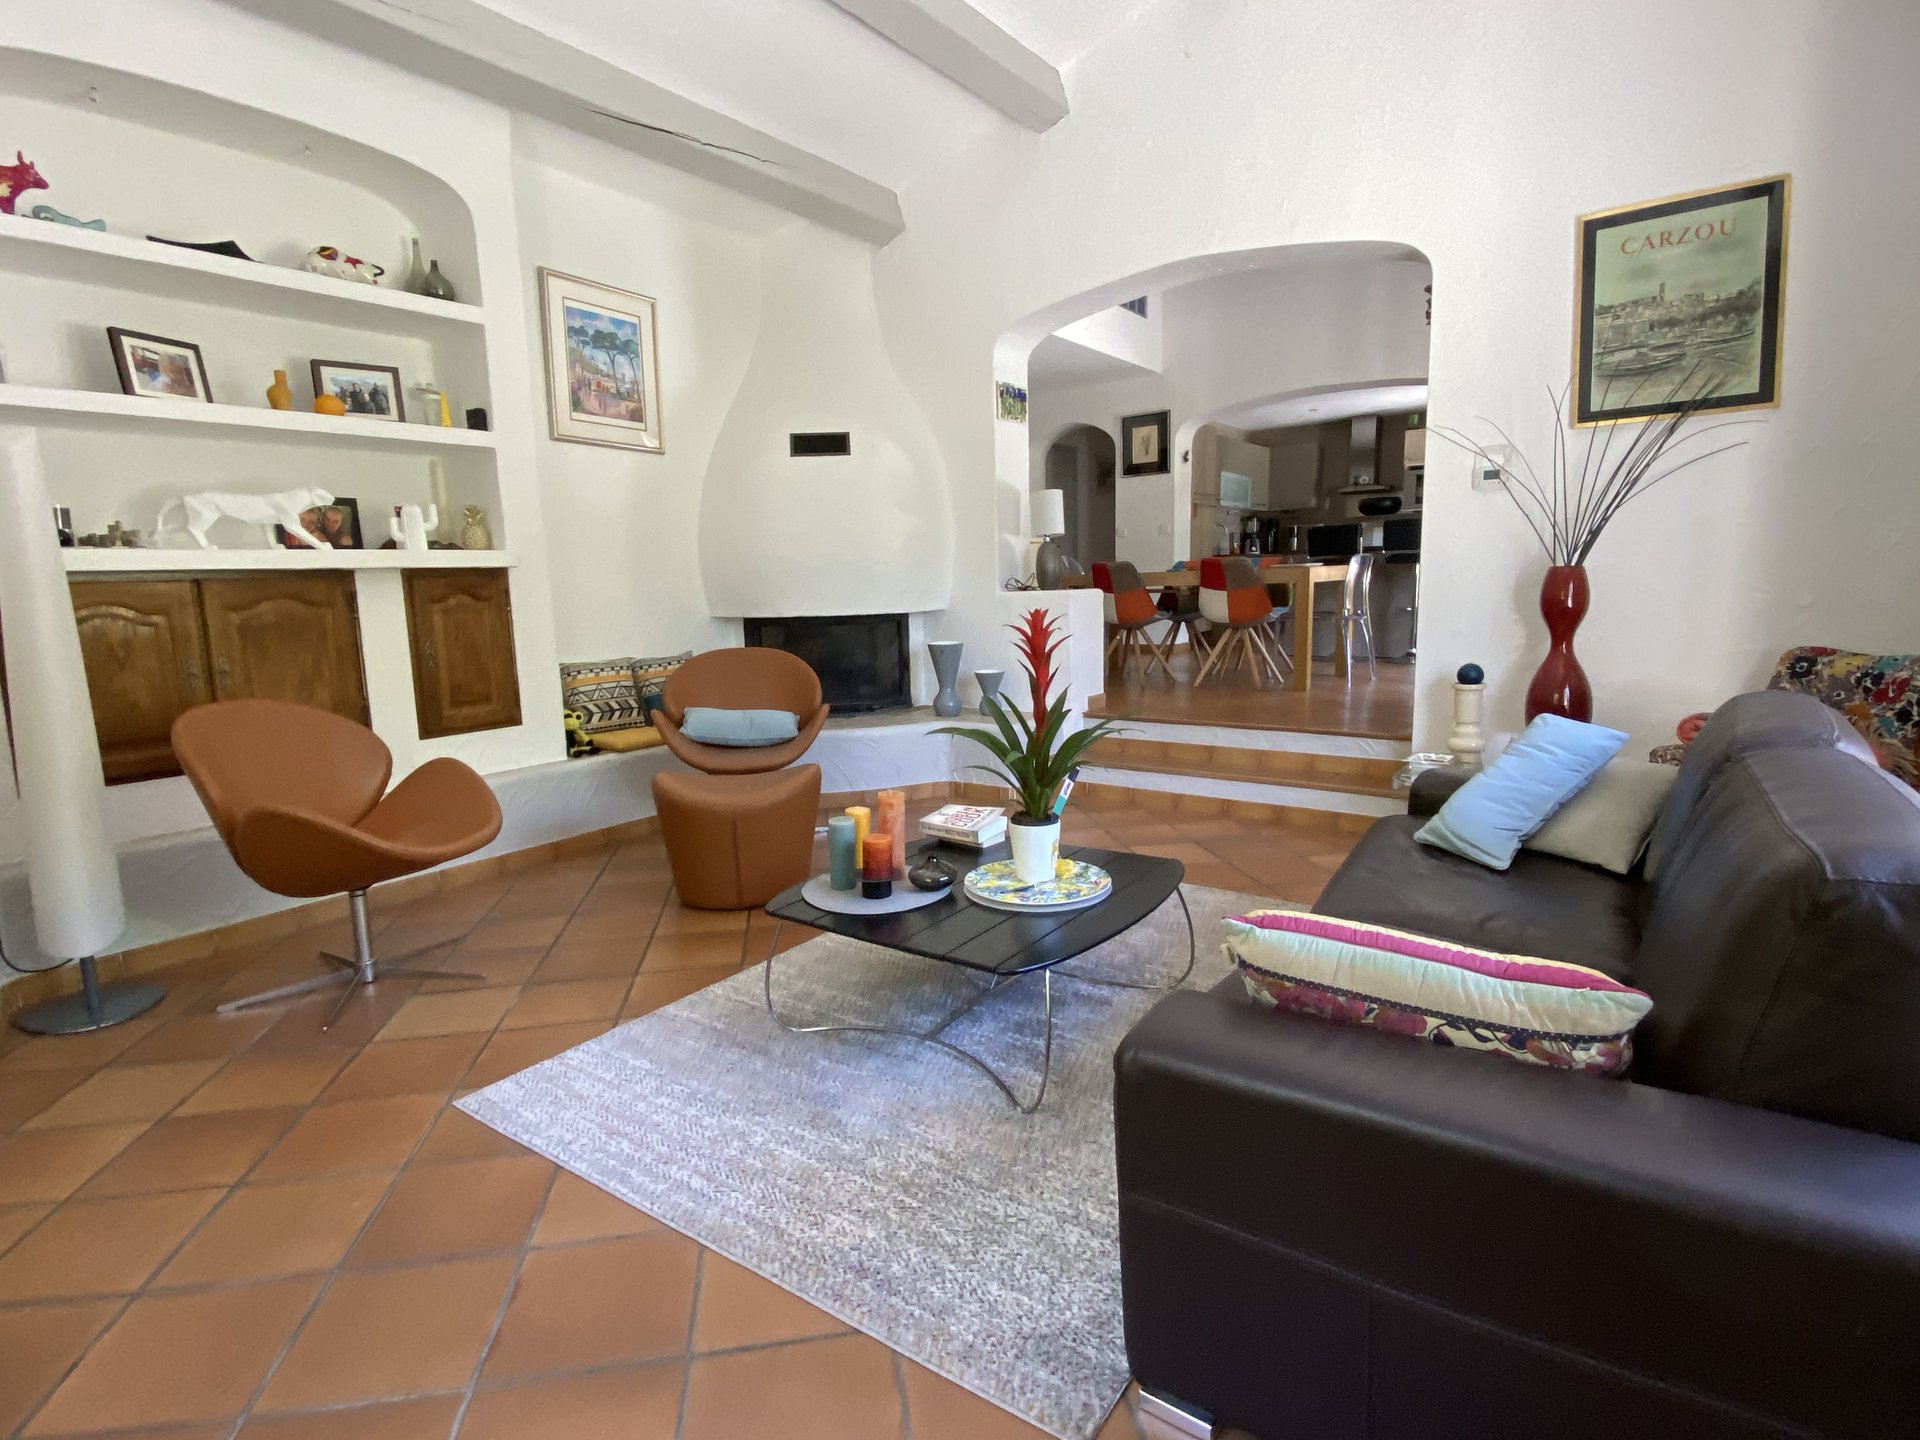 SALE MOUANS SARTOUX 5 ROOM VILLA ON FLAT GROUND WITH POOL